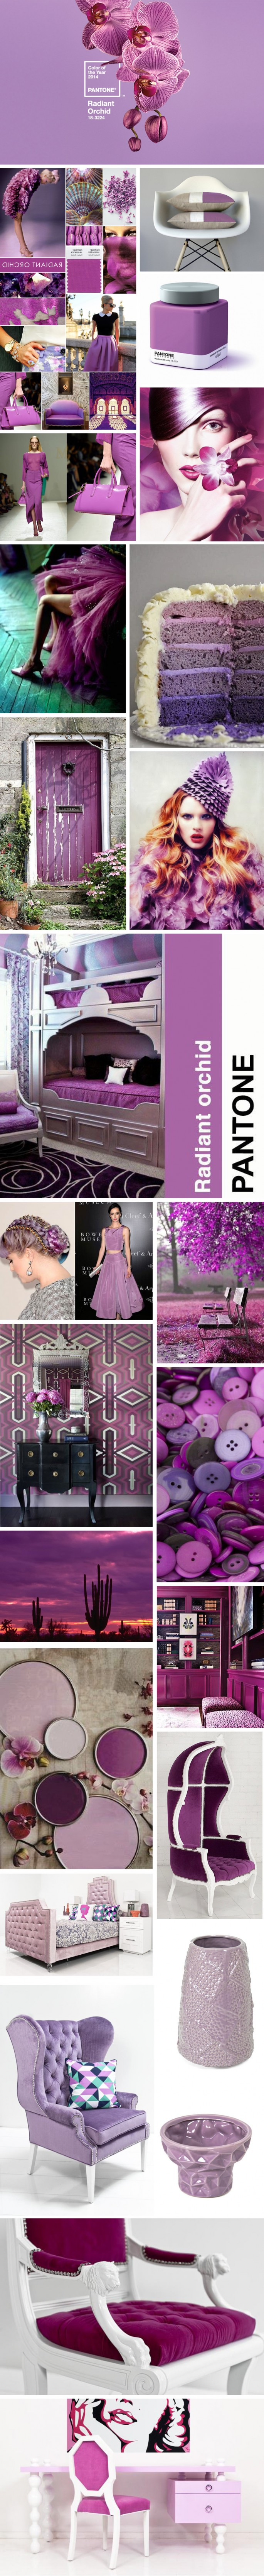 Pantone_Radiant Orchid